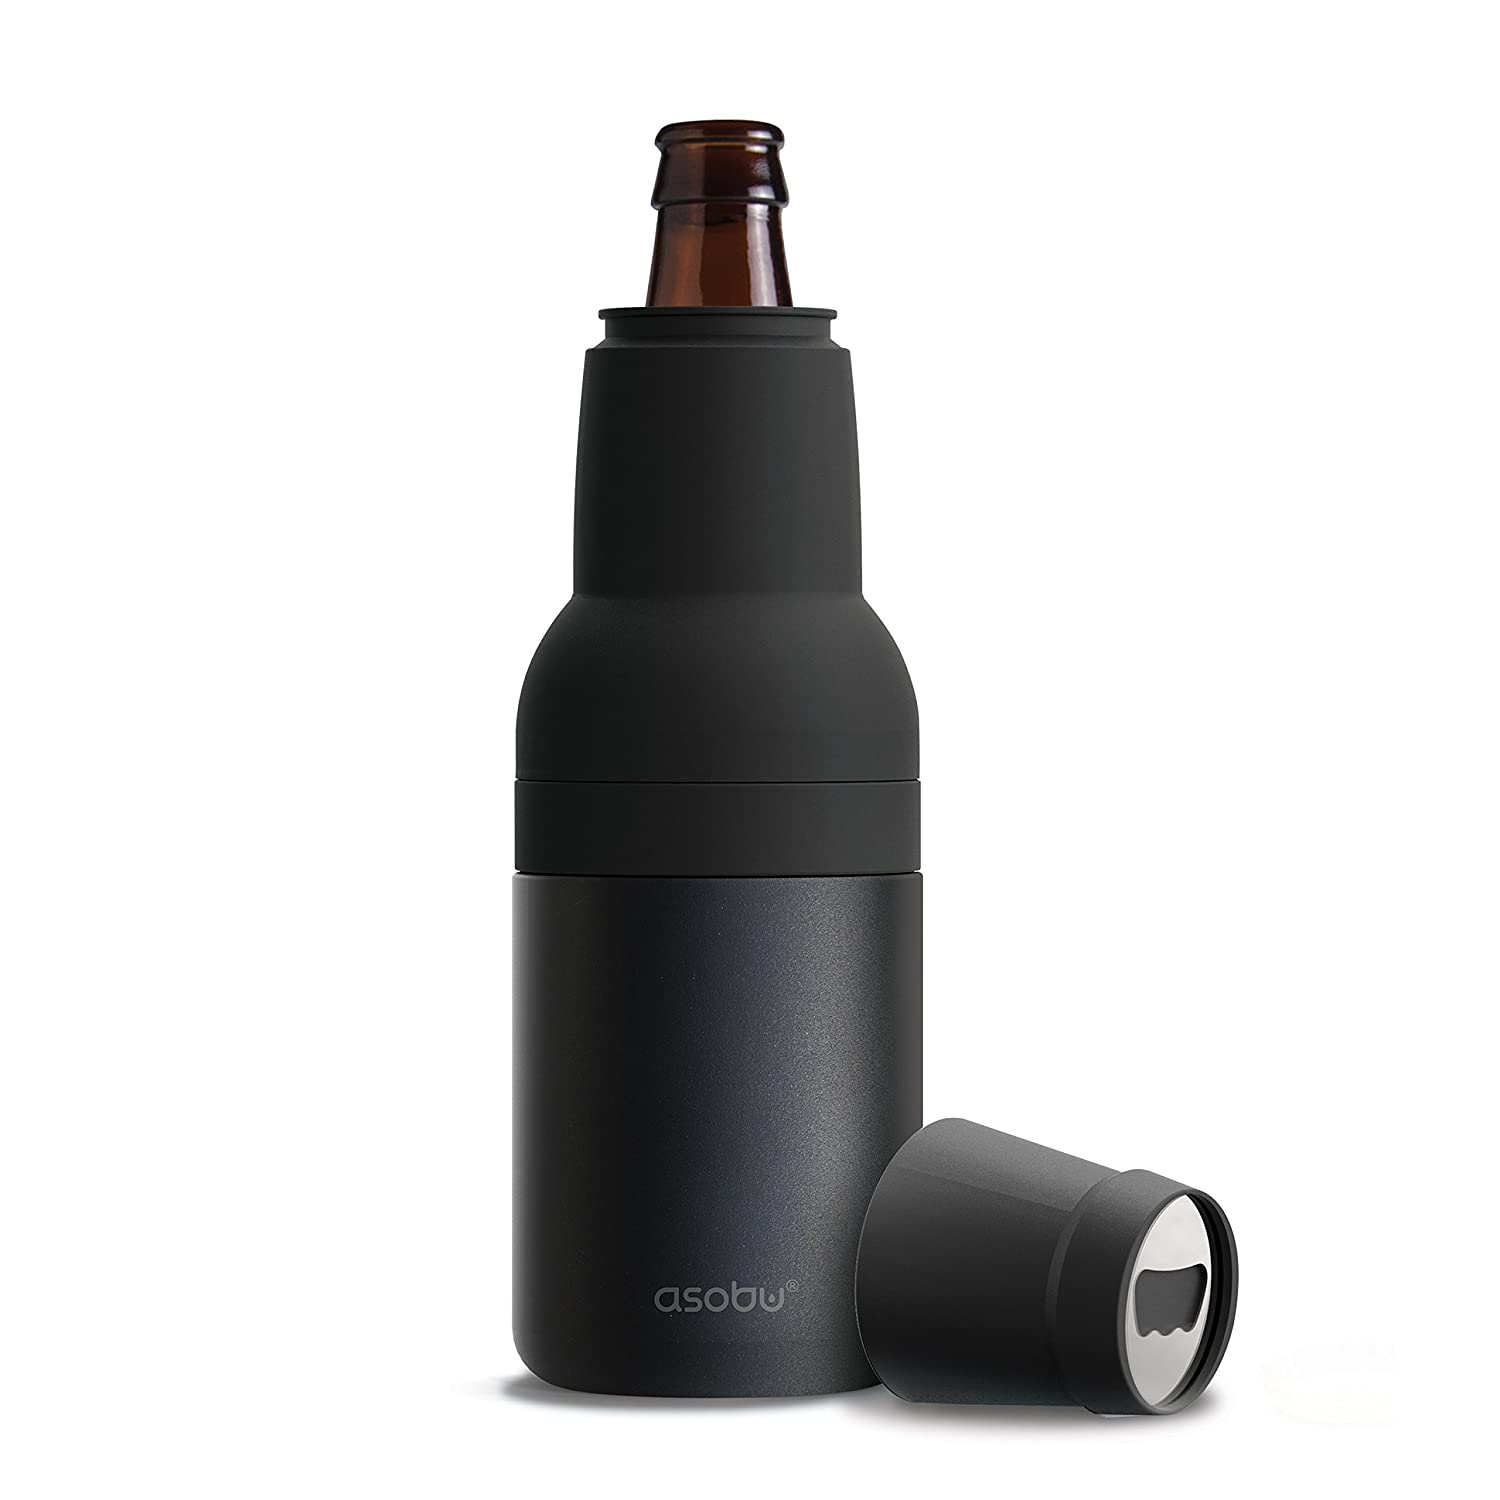 Asobu Frosty Beer 2 Go Vacuum Insulated Double Walled Stainless Steel Beer Bottle and Can Cooler with Beer Opener (black)